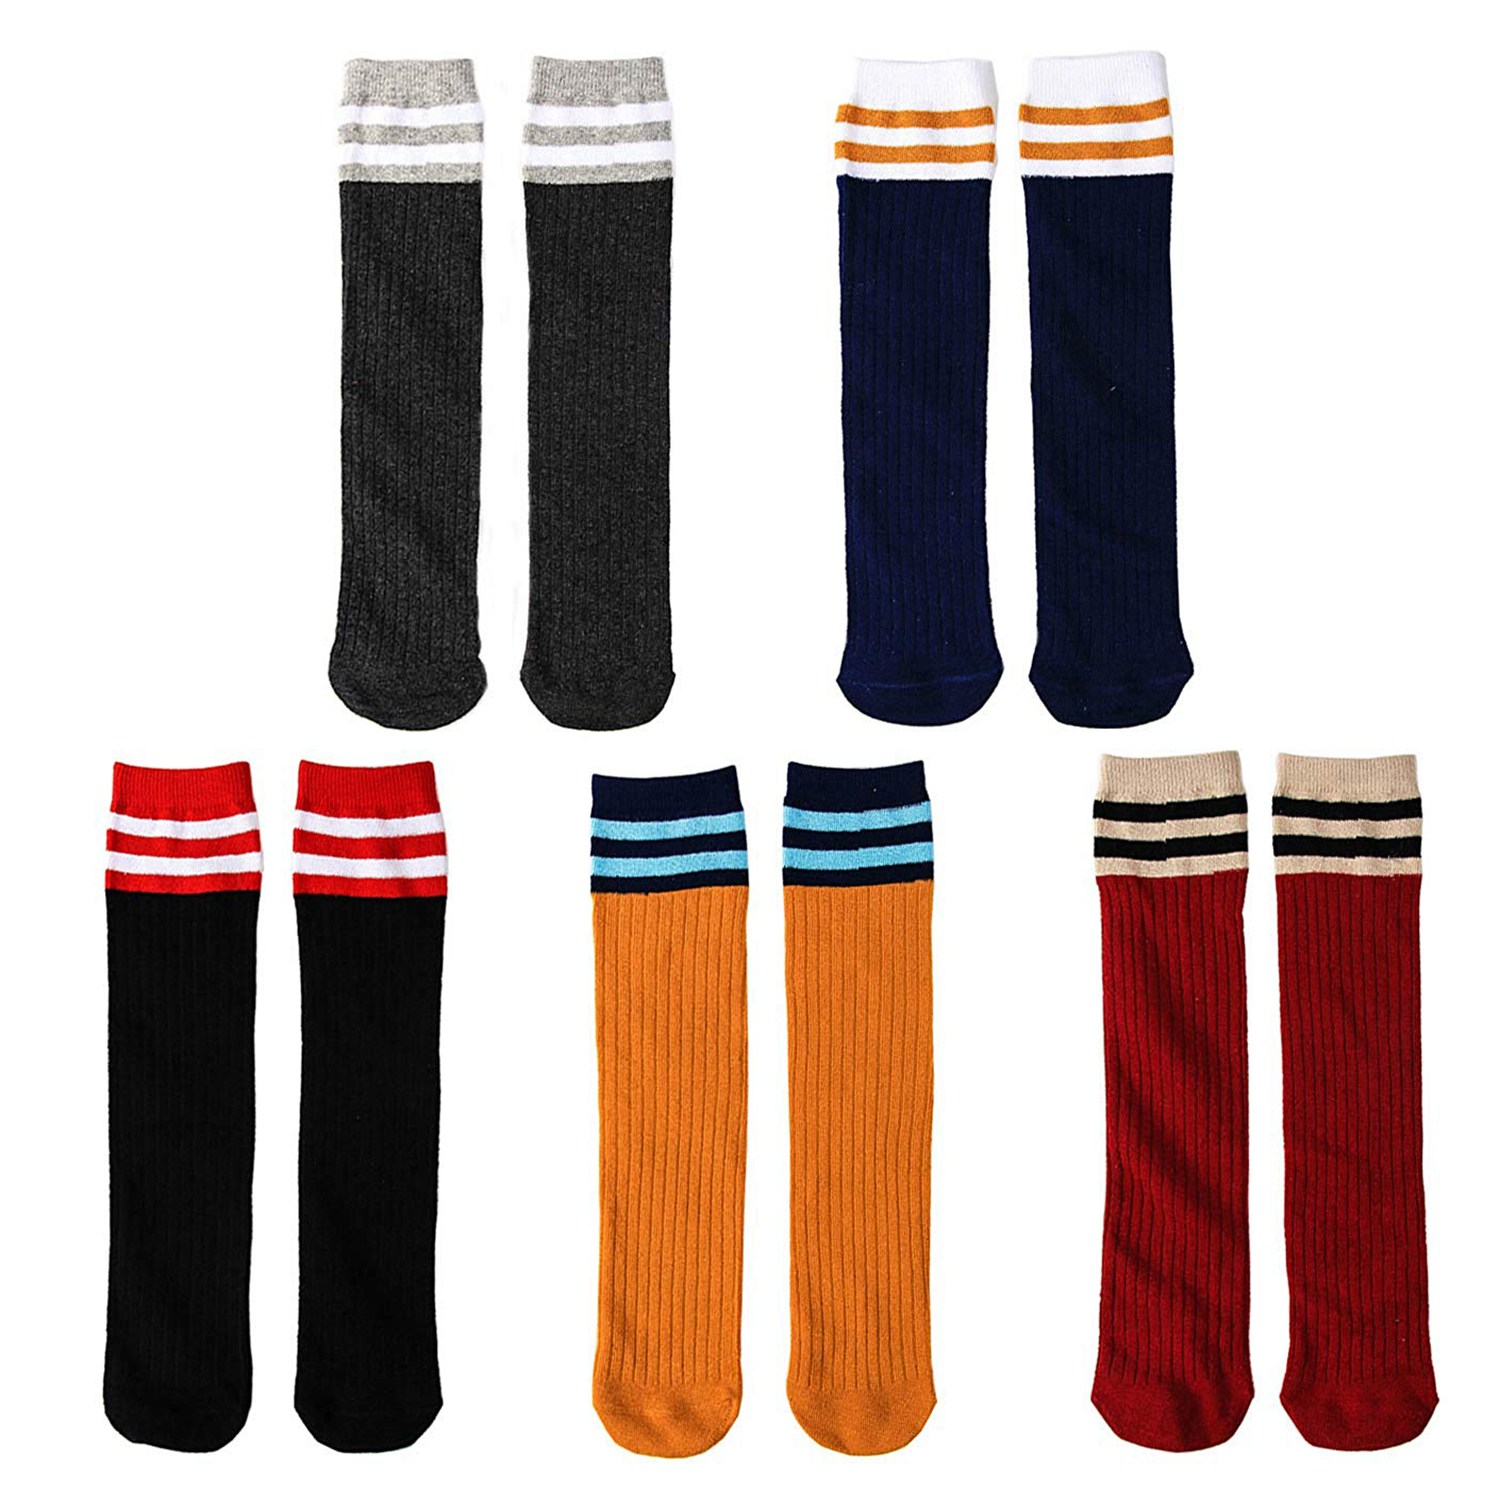 Kids Cotton Socks Knee High For 3-8 Year Olds, 5 PAIR